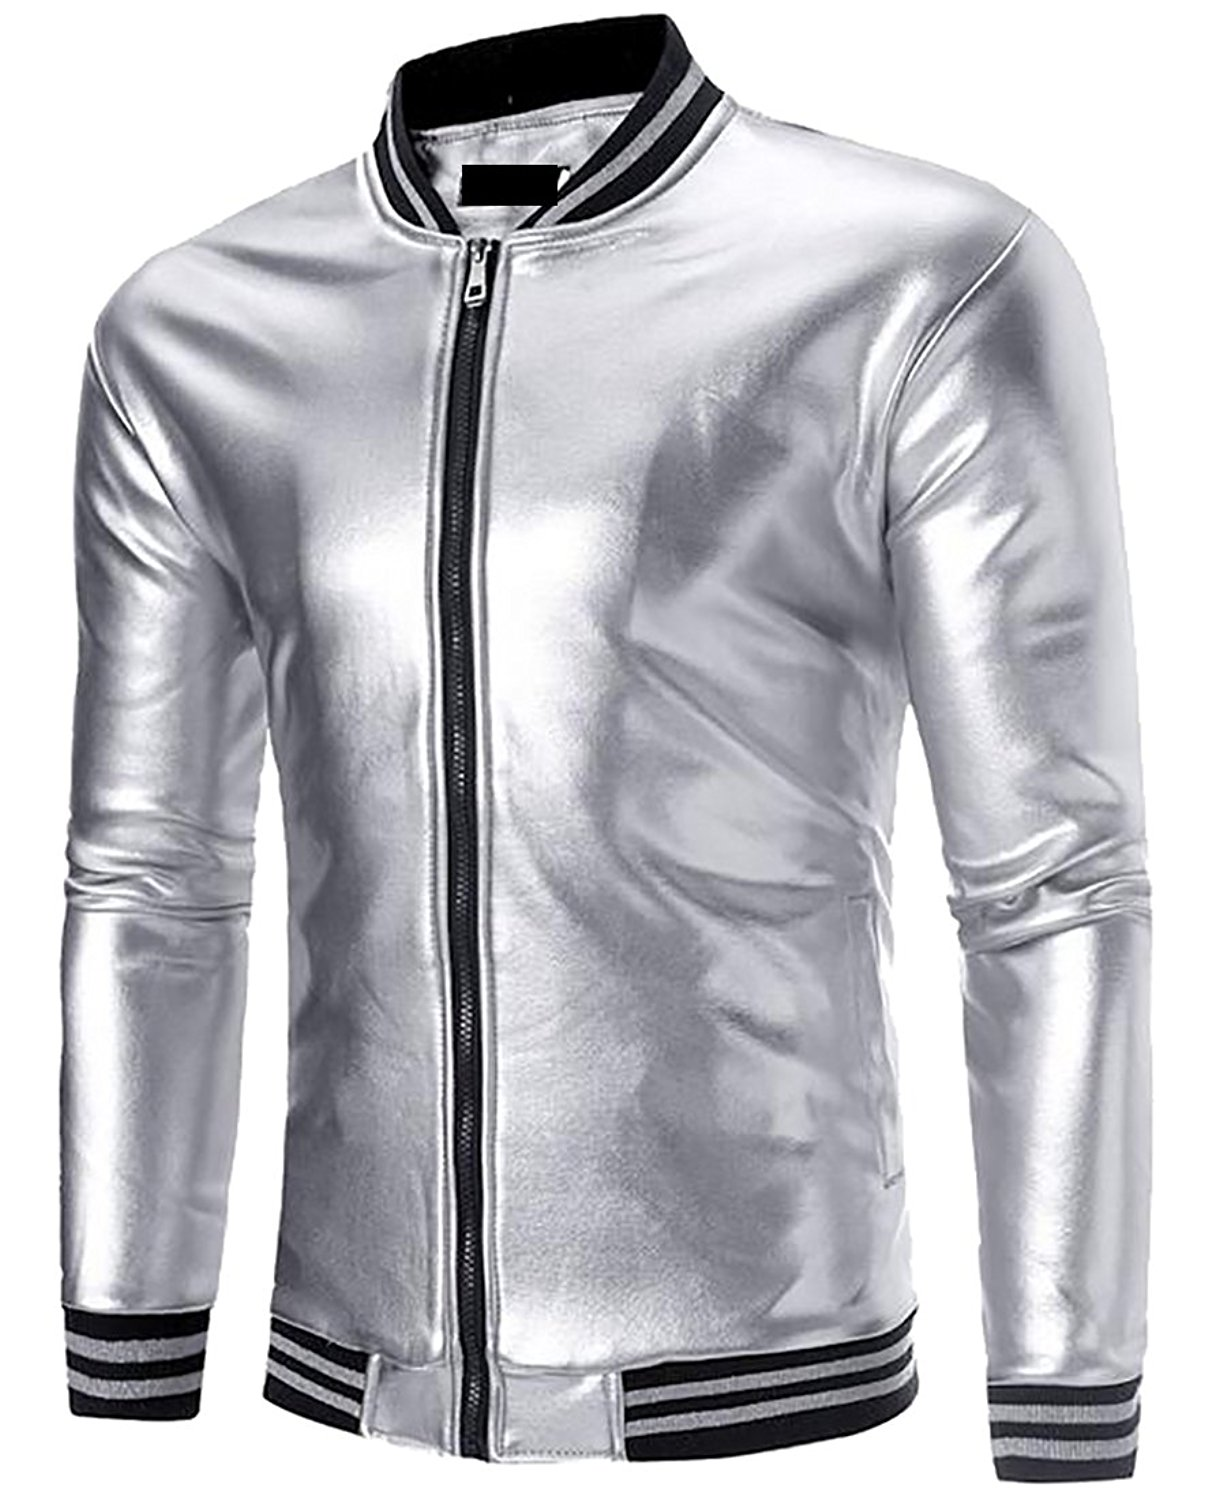 ainr Mens Warm Casual Slim Fit Shiny Metallic Zip Up Slim Fit Stand Collar Jacket/Night Club Stage Jacket